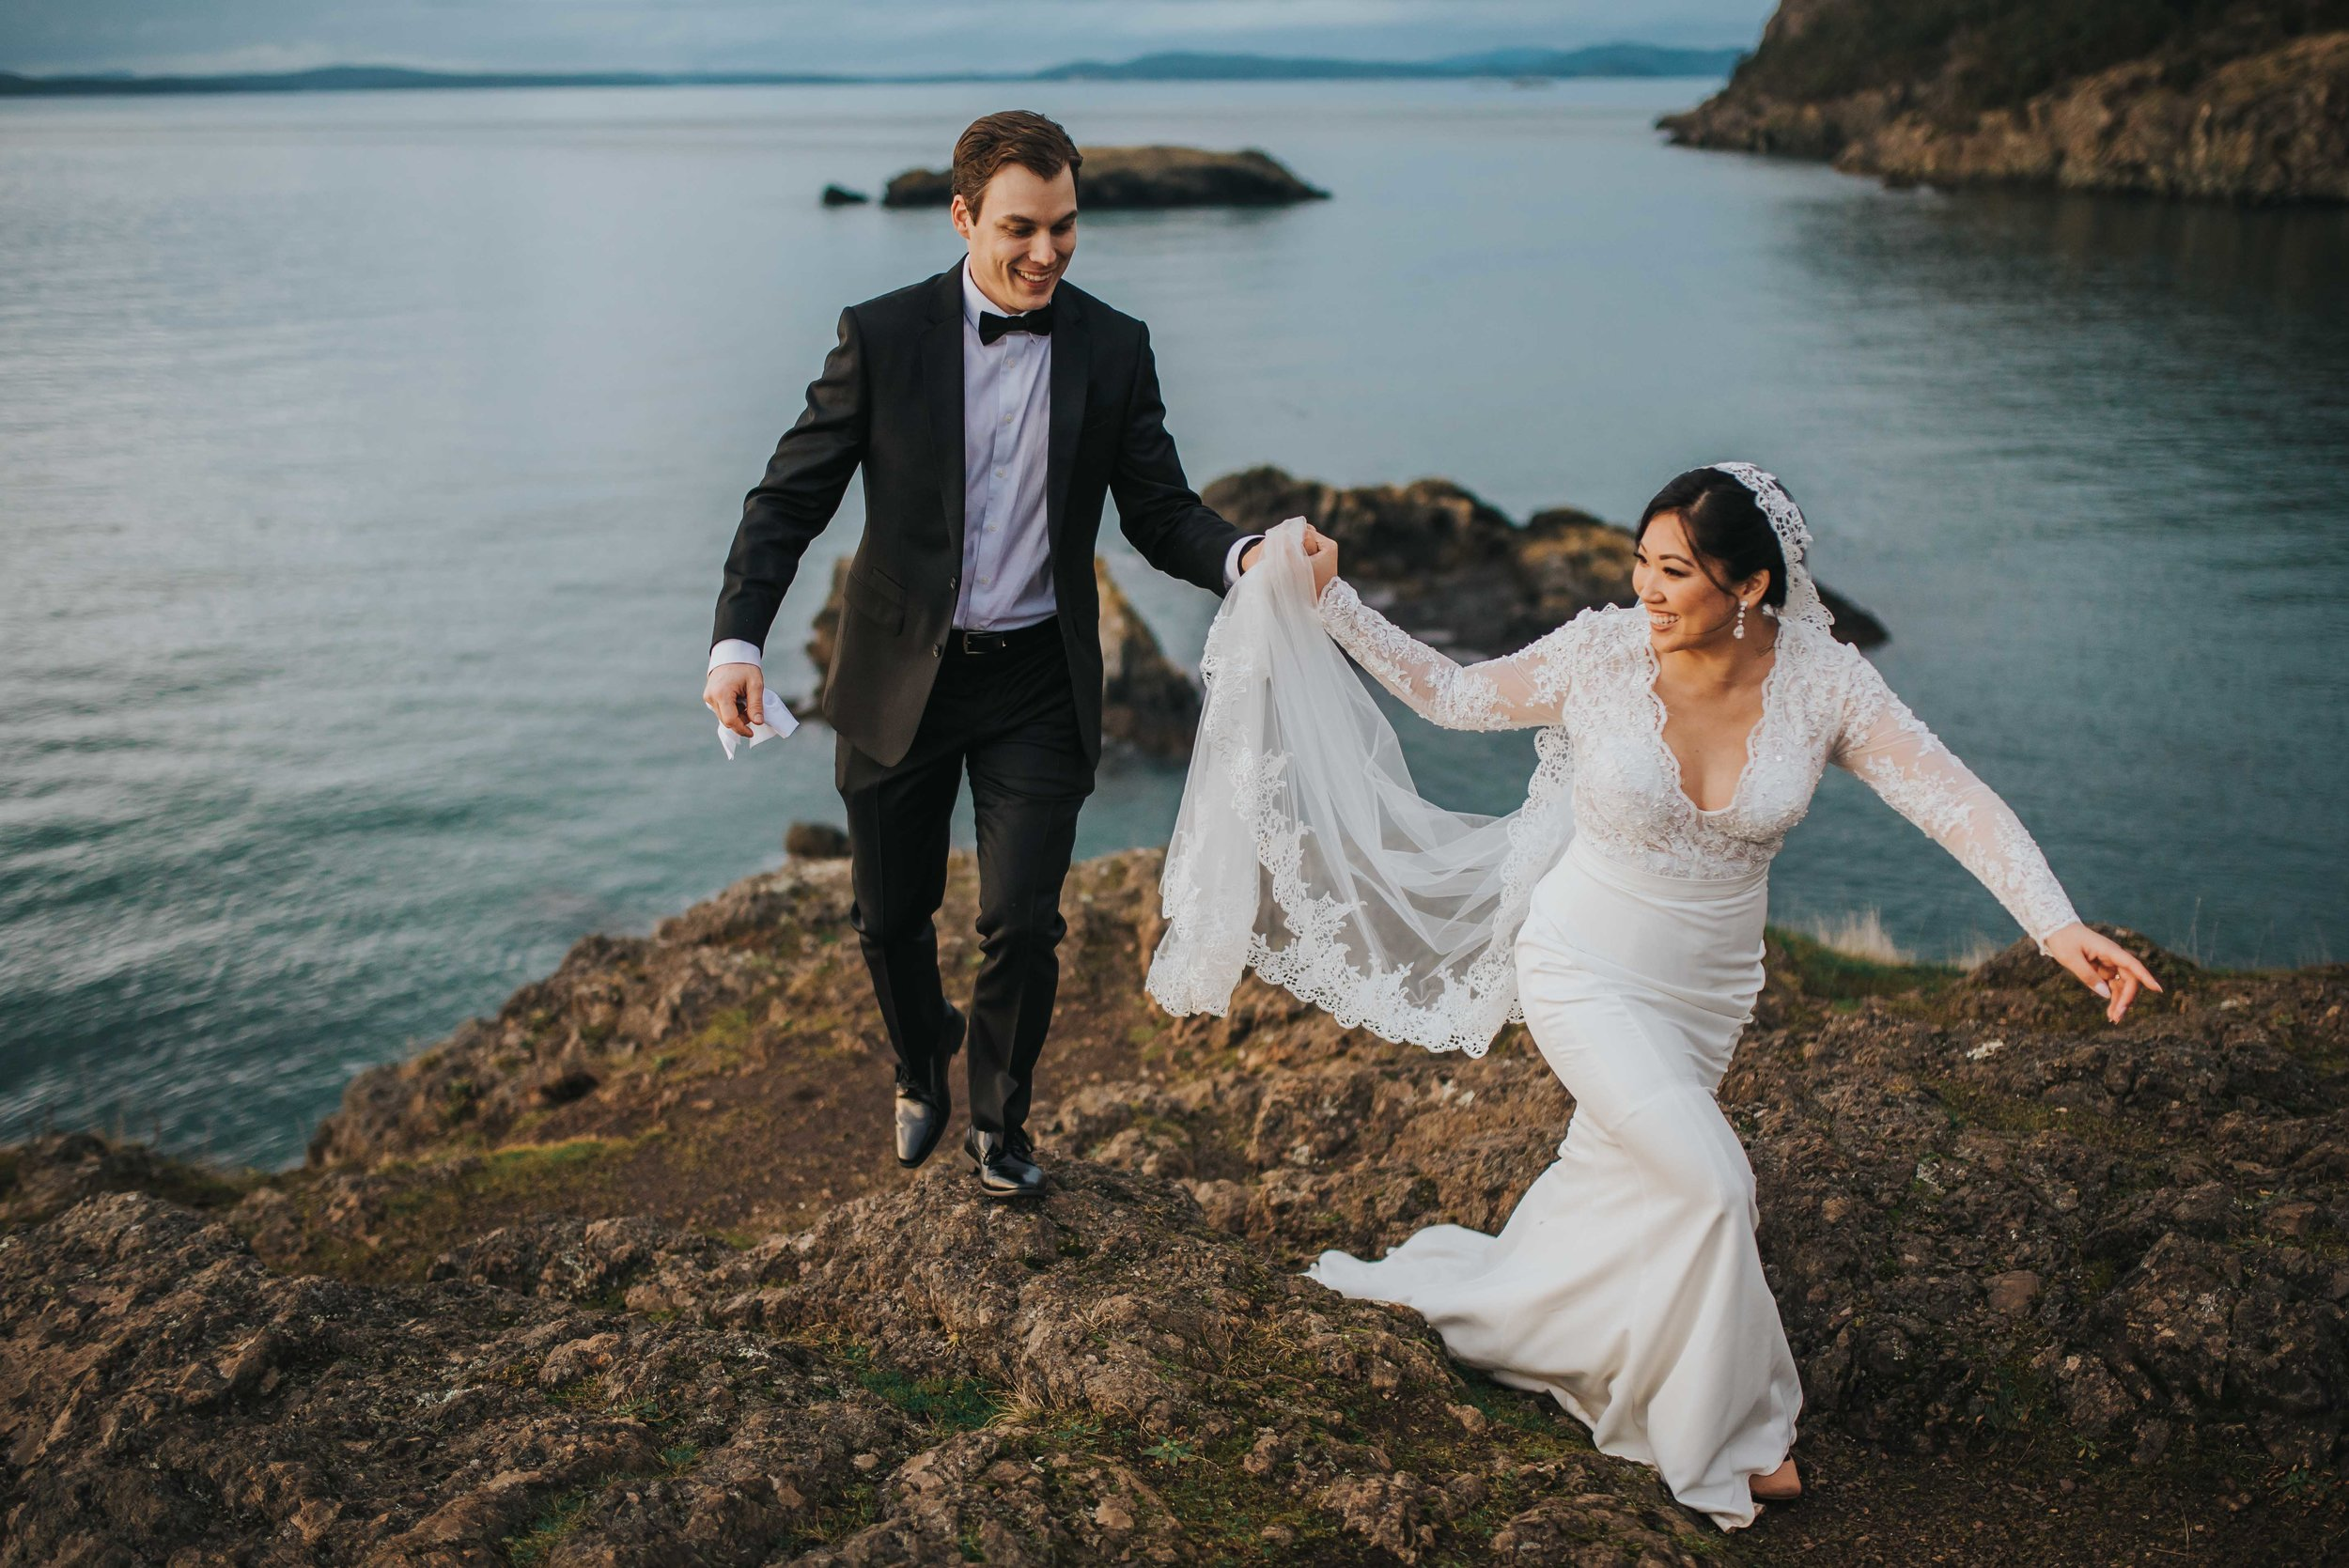 WhidbeyElopement (20 of 21).jpg